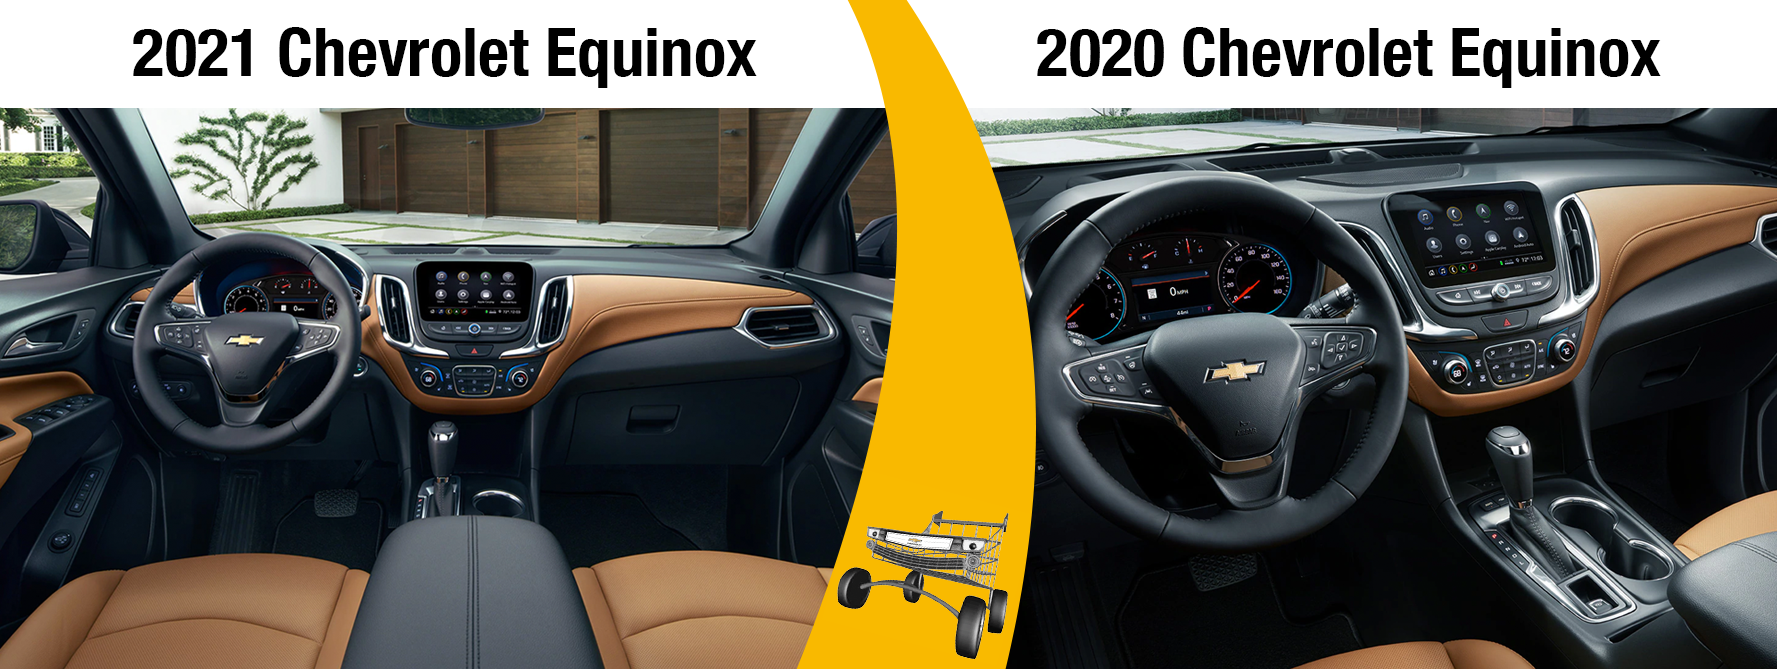 2021 Equinox Safety Features